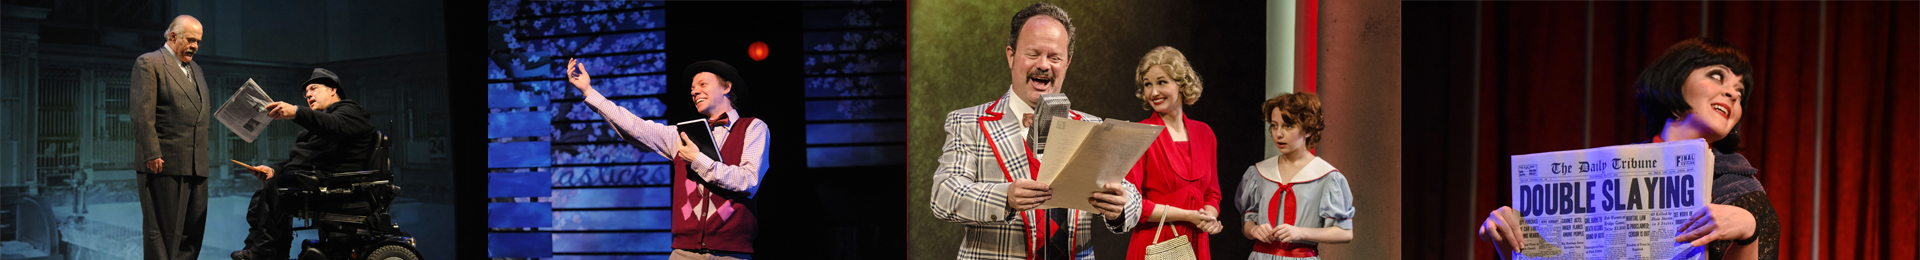 photo collage from Annie, Fantastics, and Chicago of characters reading news